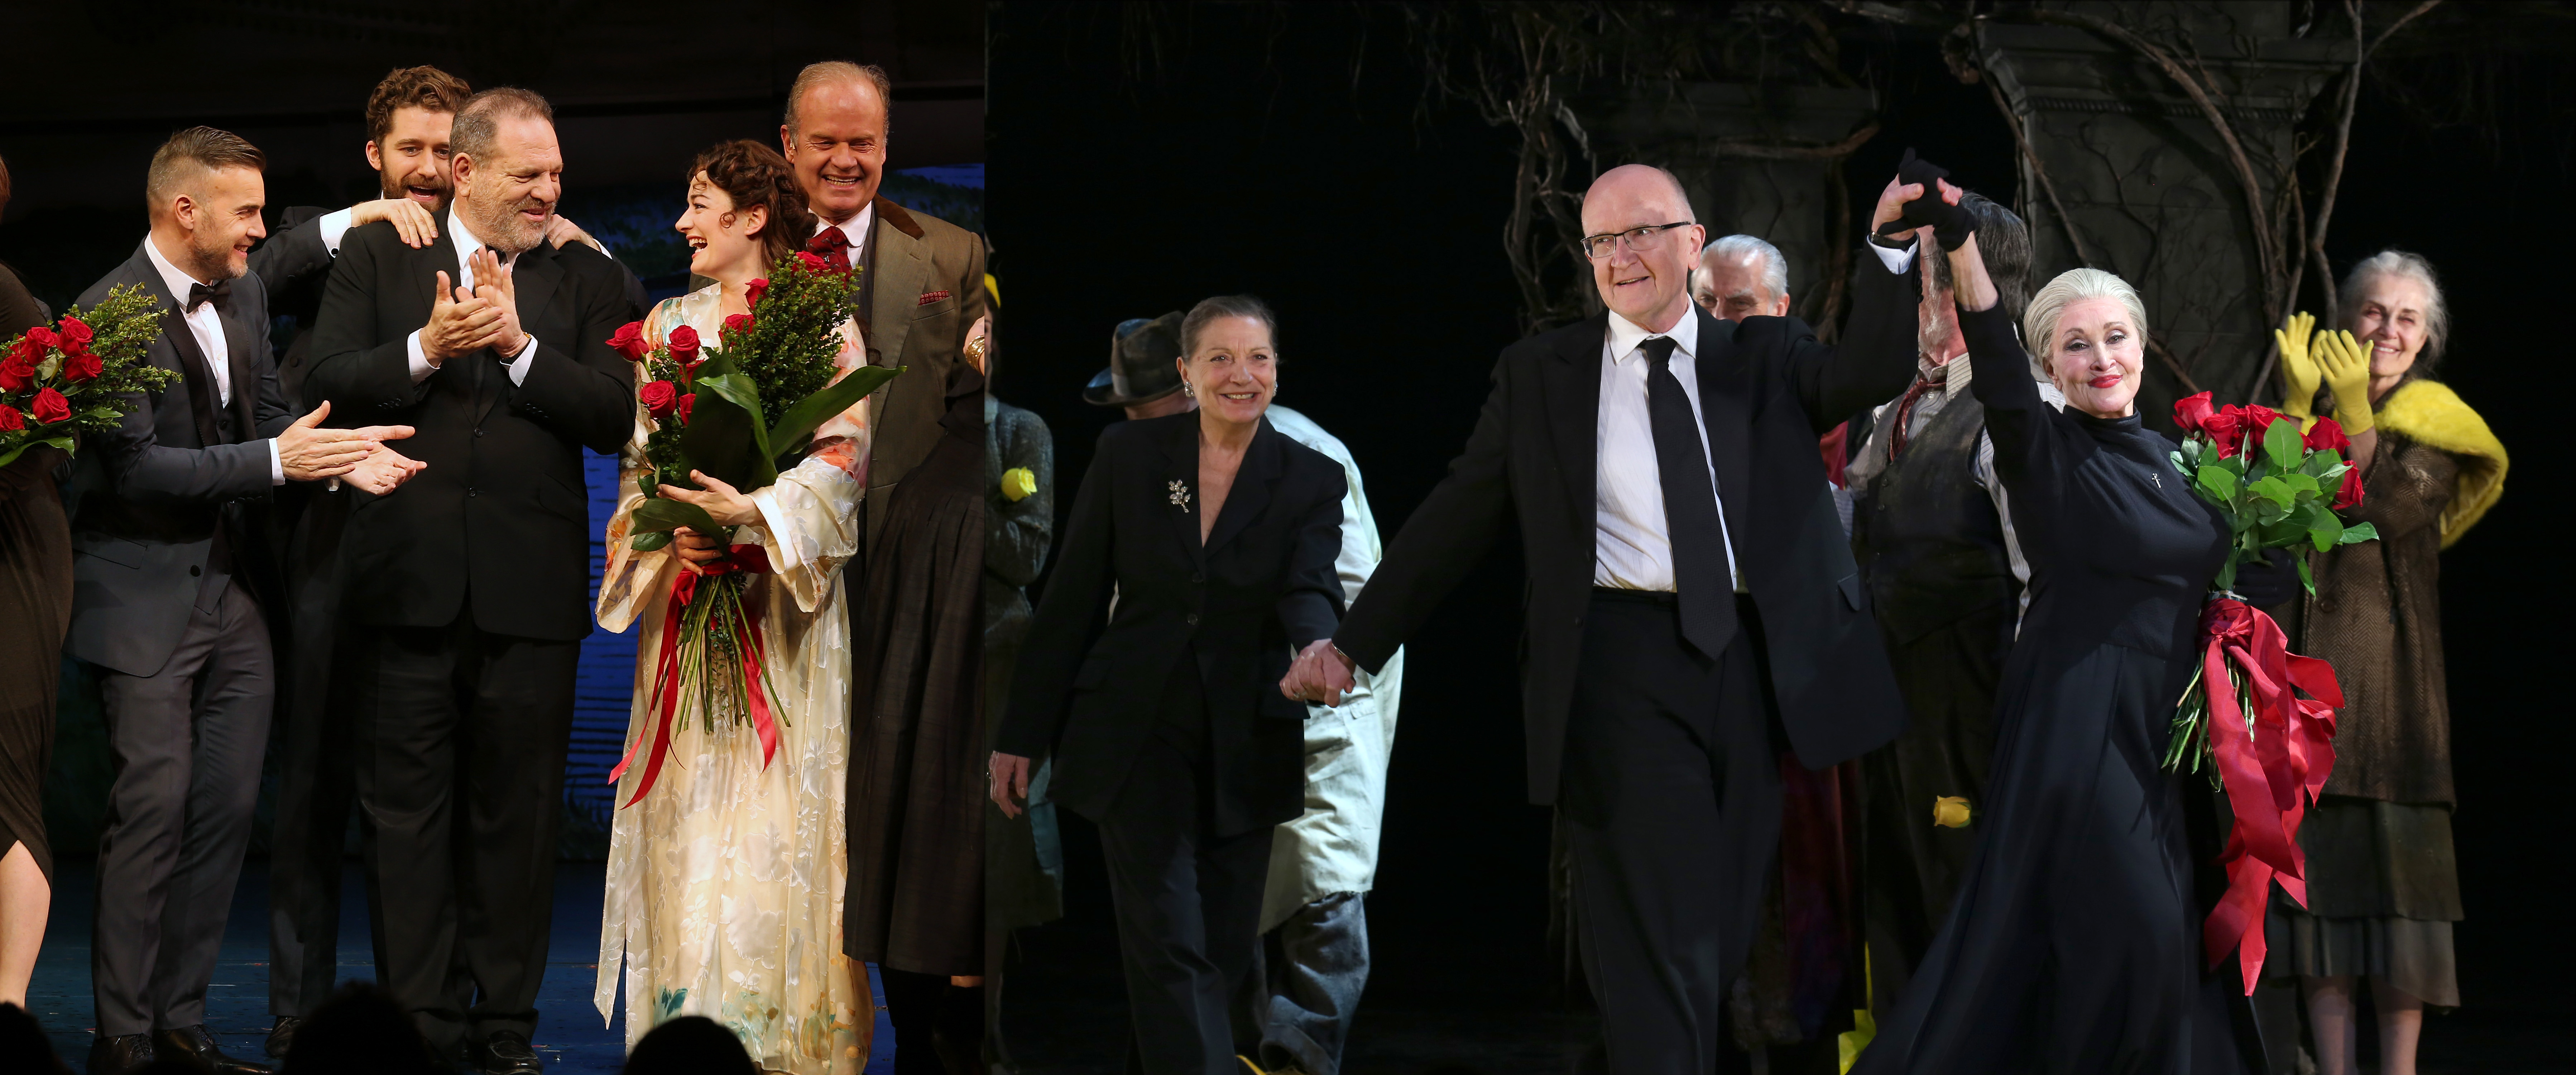 Left: The cast of Finding Neverland takes a bow on April 15, 2015 in New York City. Right: The cast of The Visit takes a bow on April 23, 2015 in New York City.